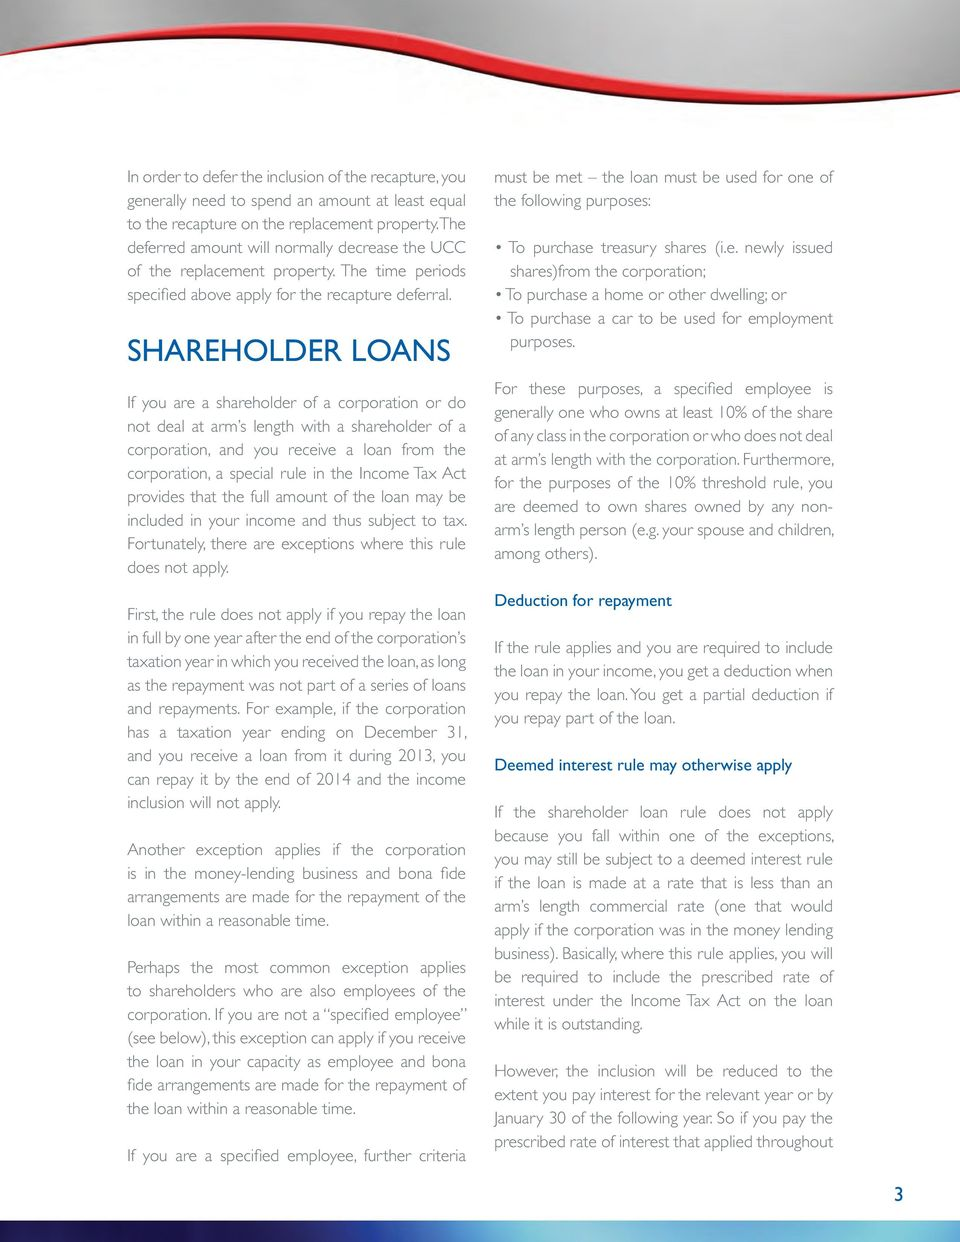 SHAREHOLDER LOANS If you are a shareholder of a corporation or do not deal at arm s length with a shareholder of a corporation, and you receive a loan from the corporation, a special rule in the